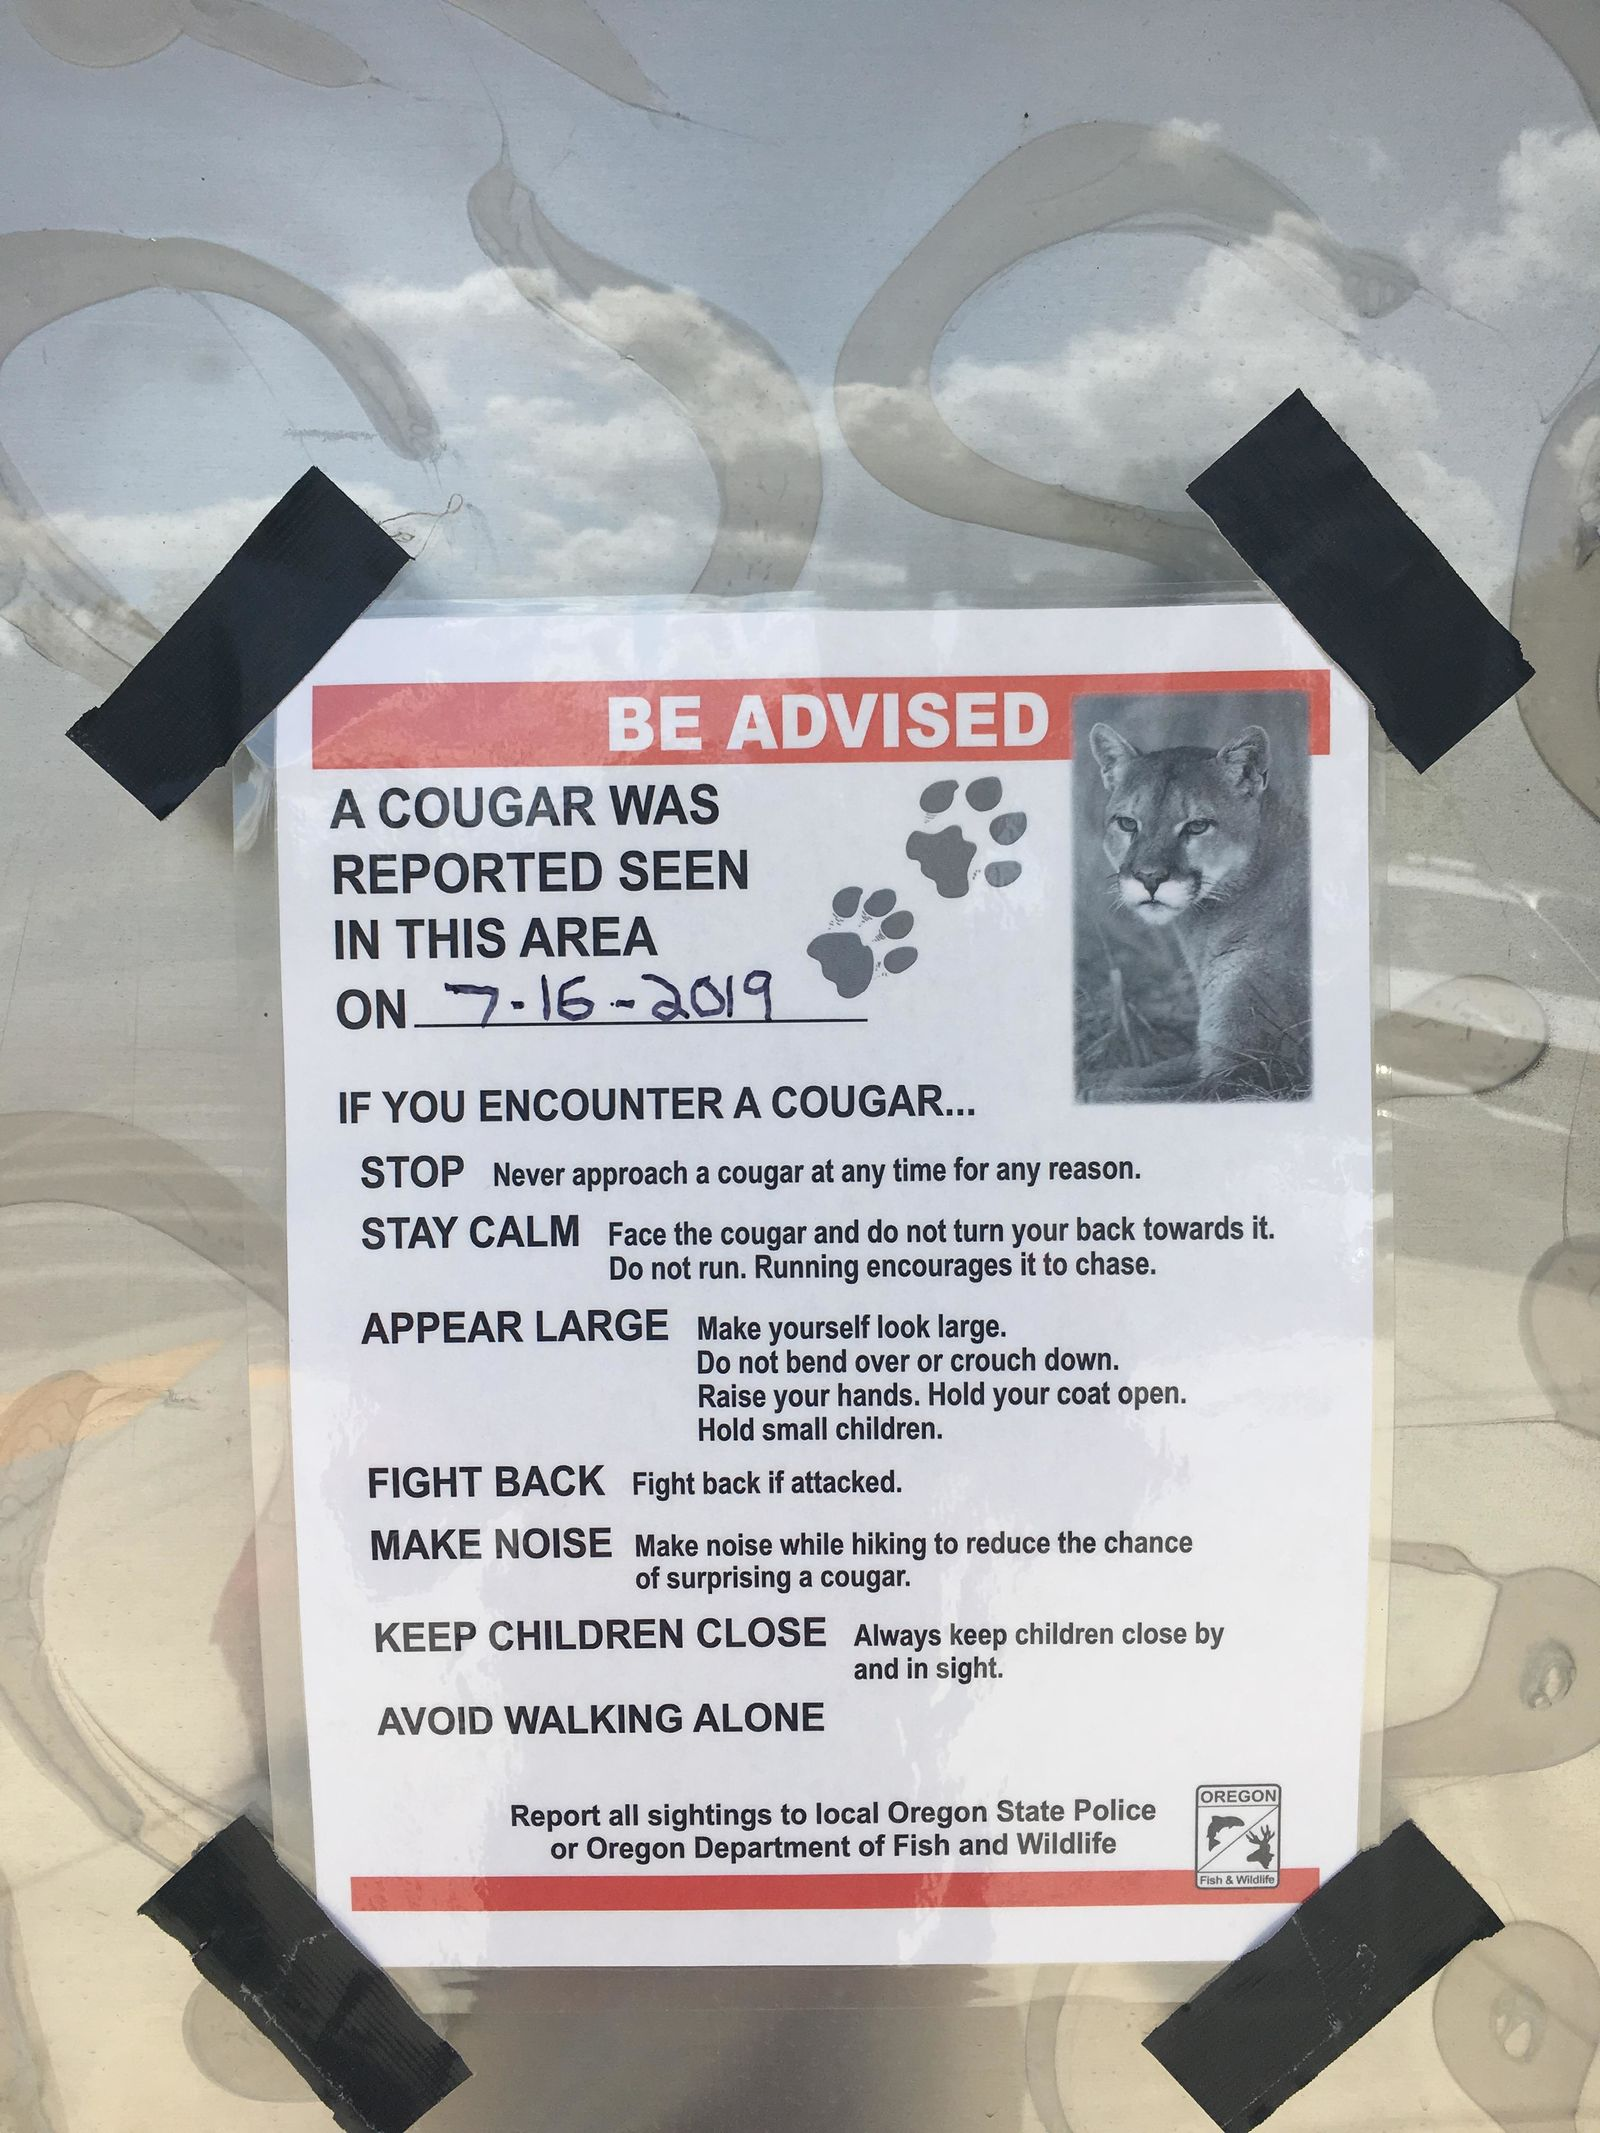 Willamalane Park and Recreation District is warning people about a cougar near the Mill Race path. (SBG)